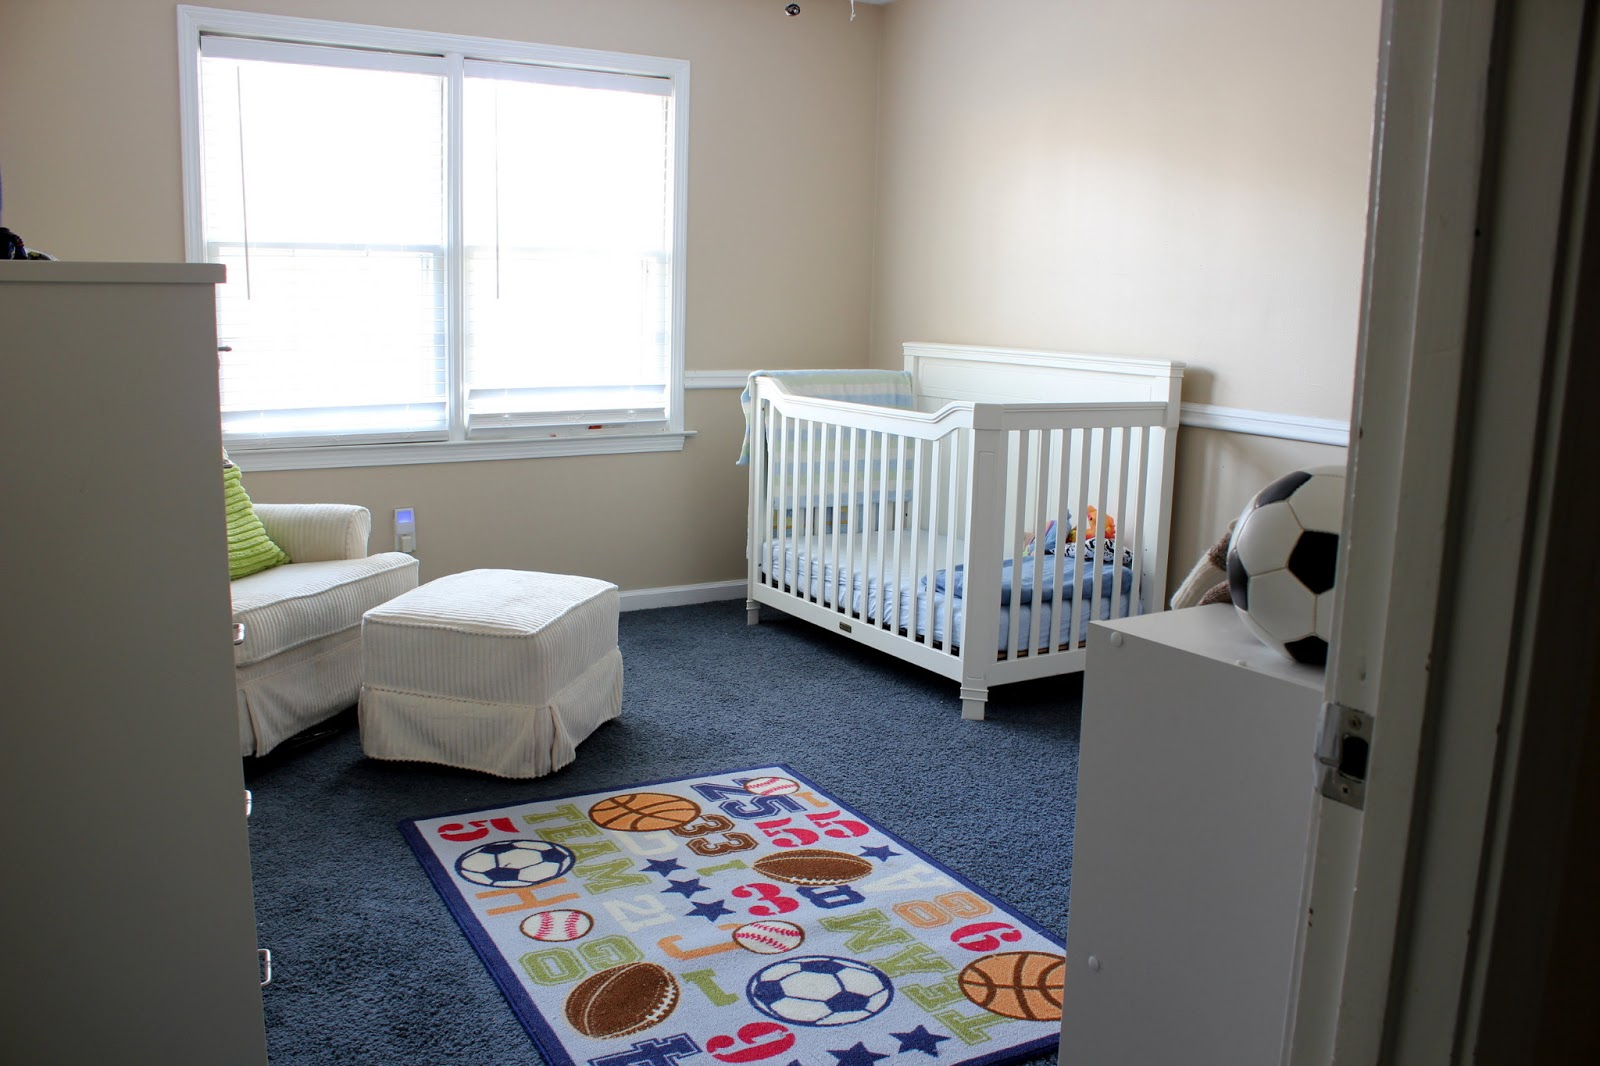 Quot Big Boy Room Quot Shopping Thrifty Finds Erin Spain